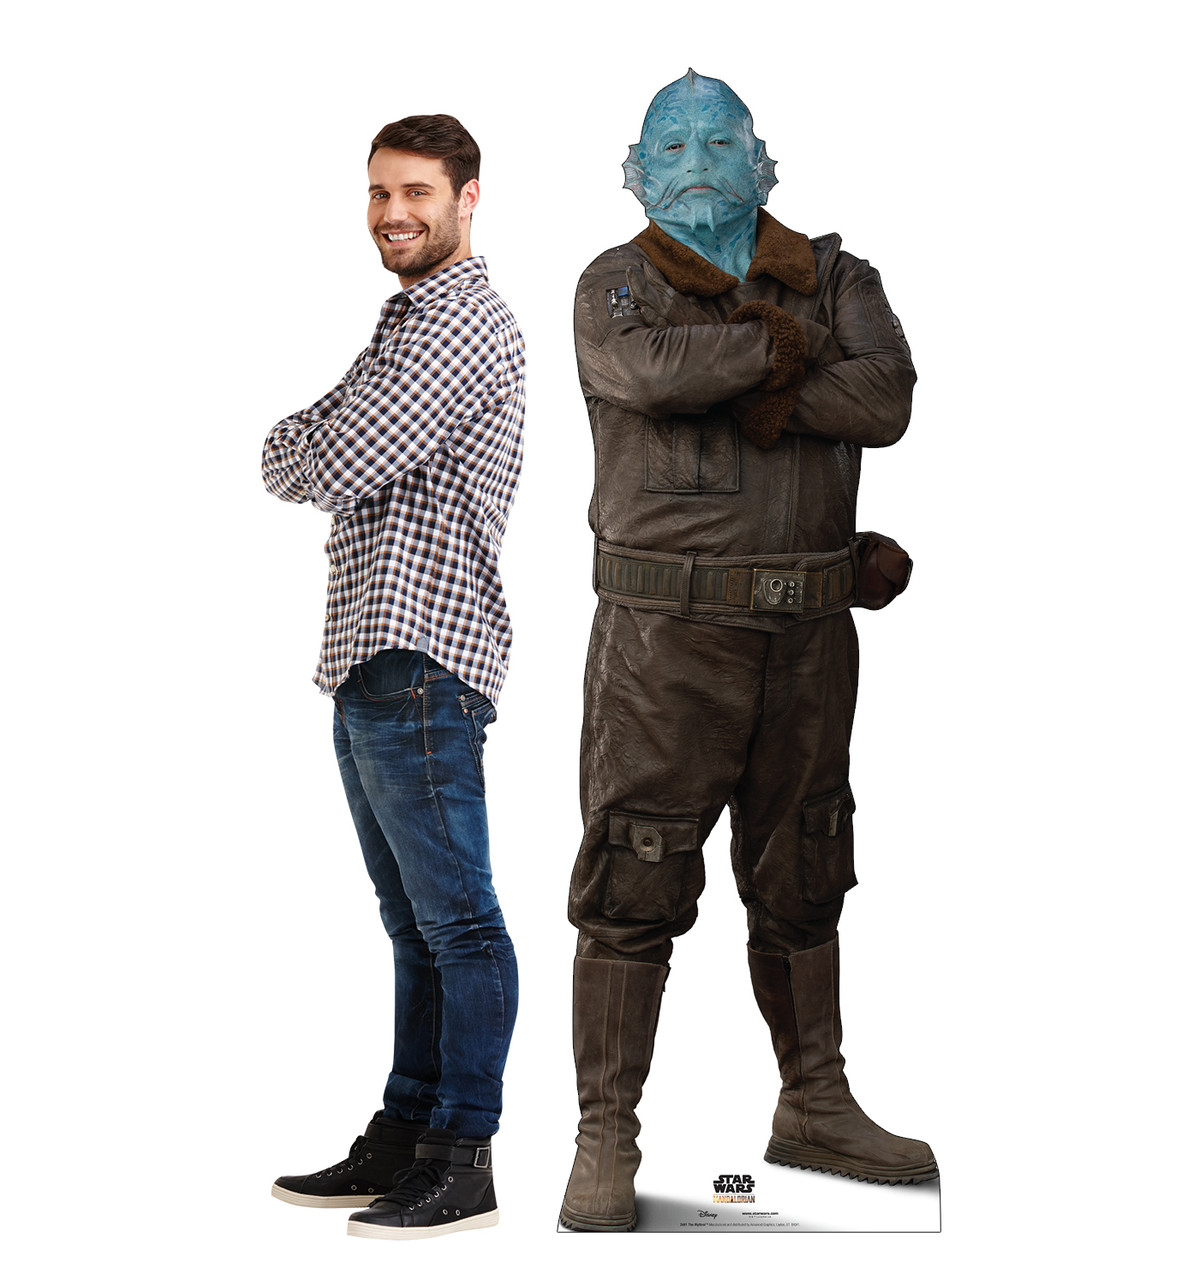 Life-size cardboard standee of The Mythrol with model.